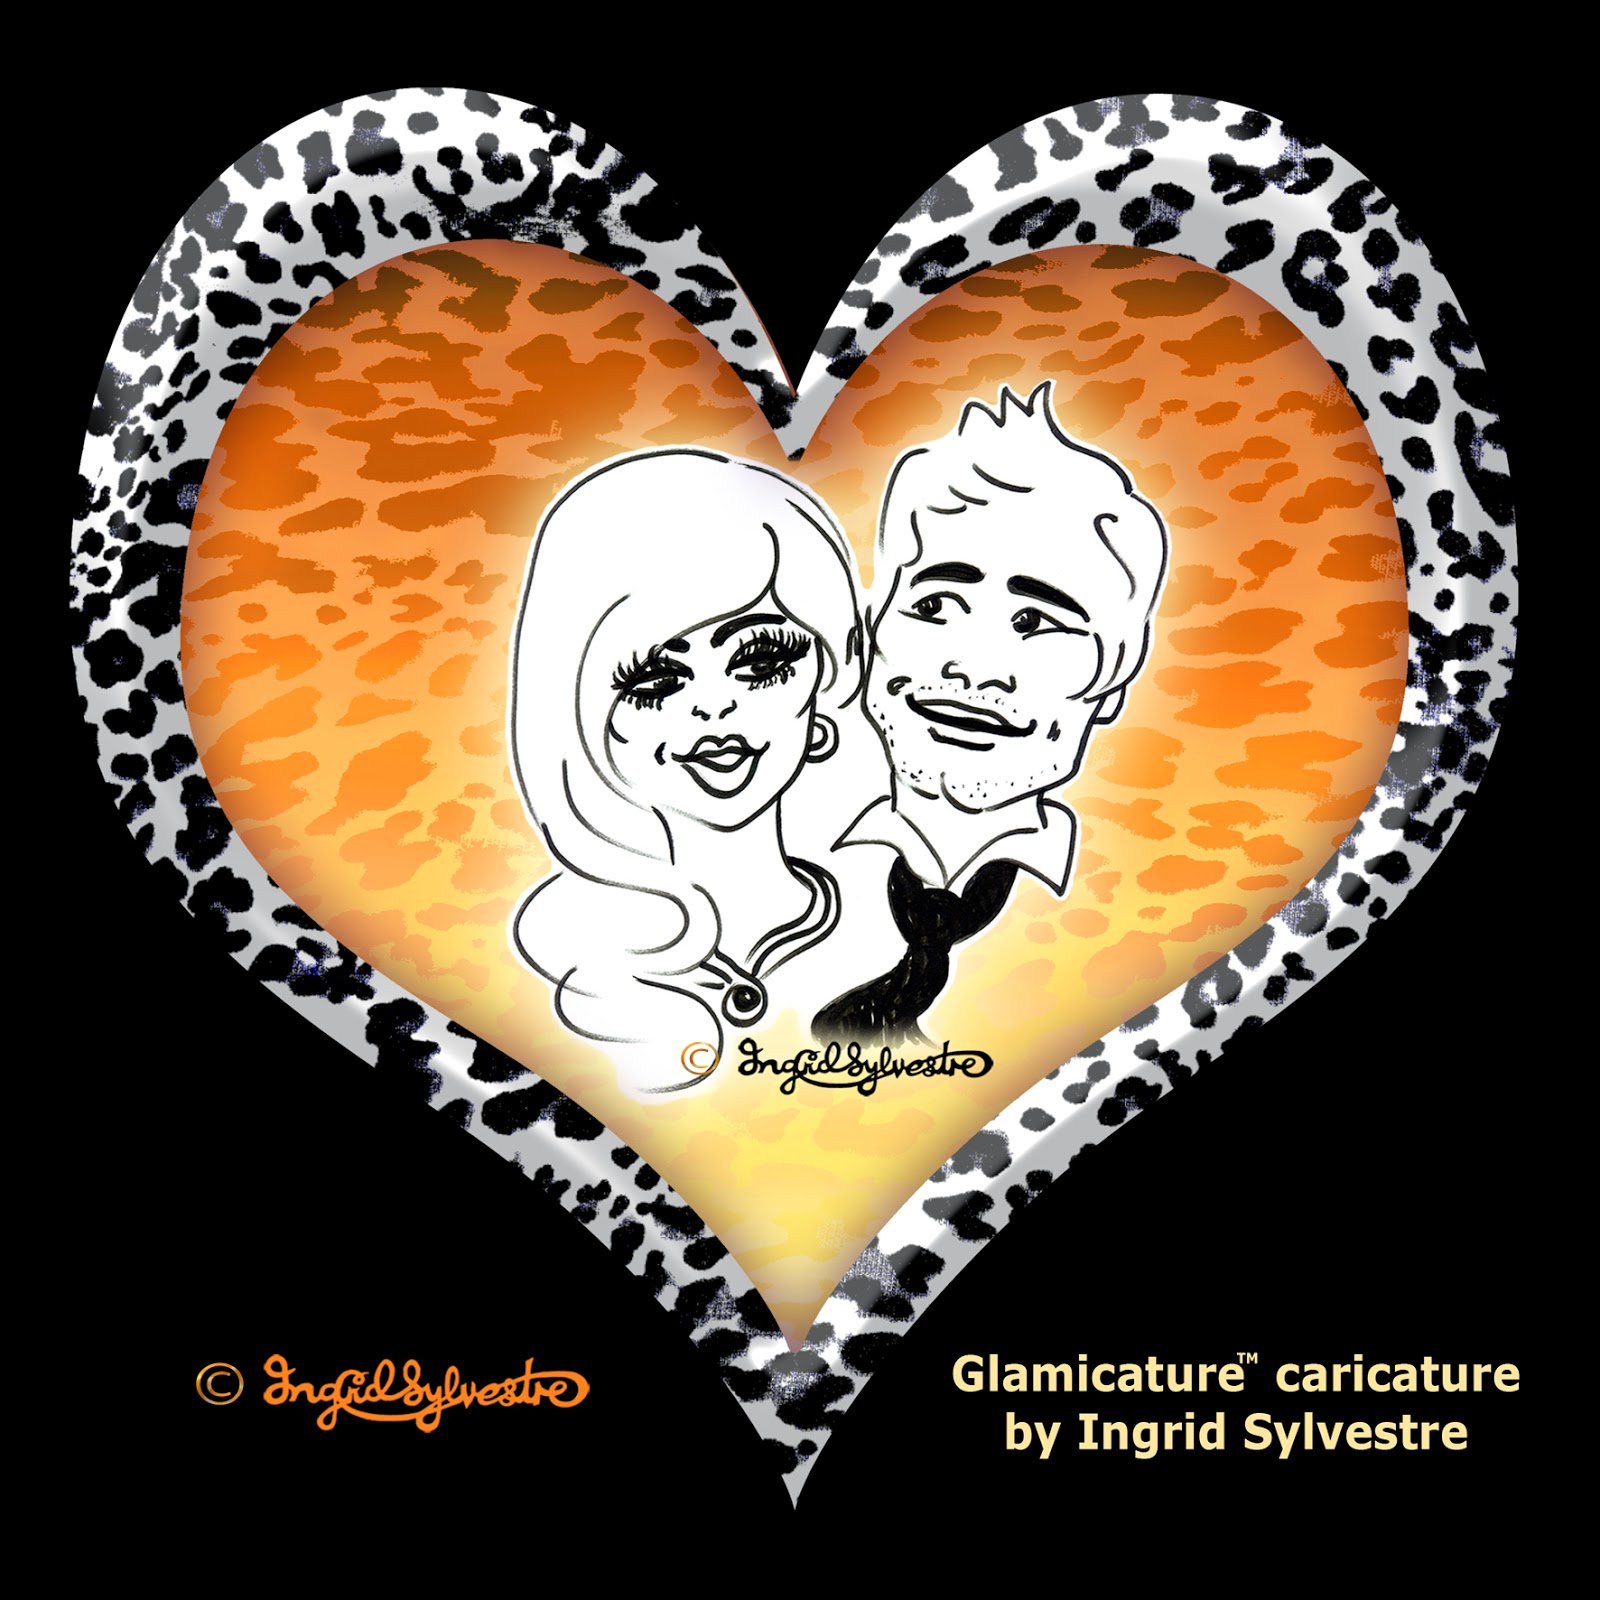 Party Glamicature in digital frame by UK caricature artist Ingrid Sylvestre